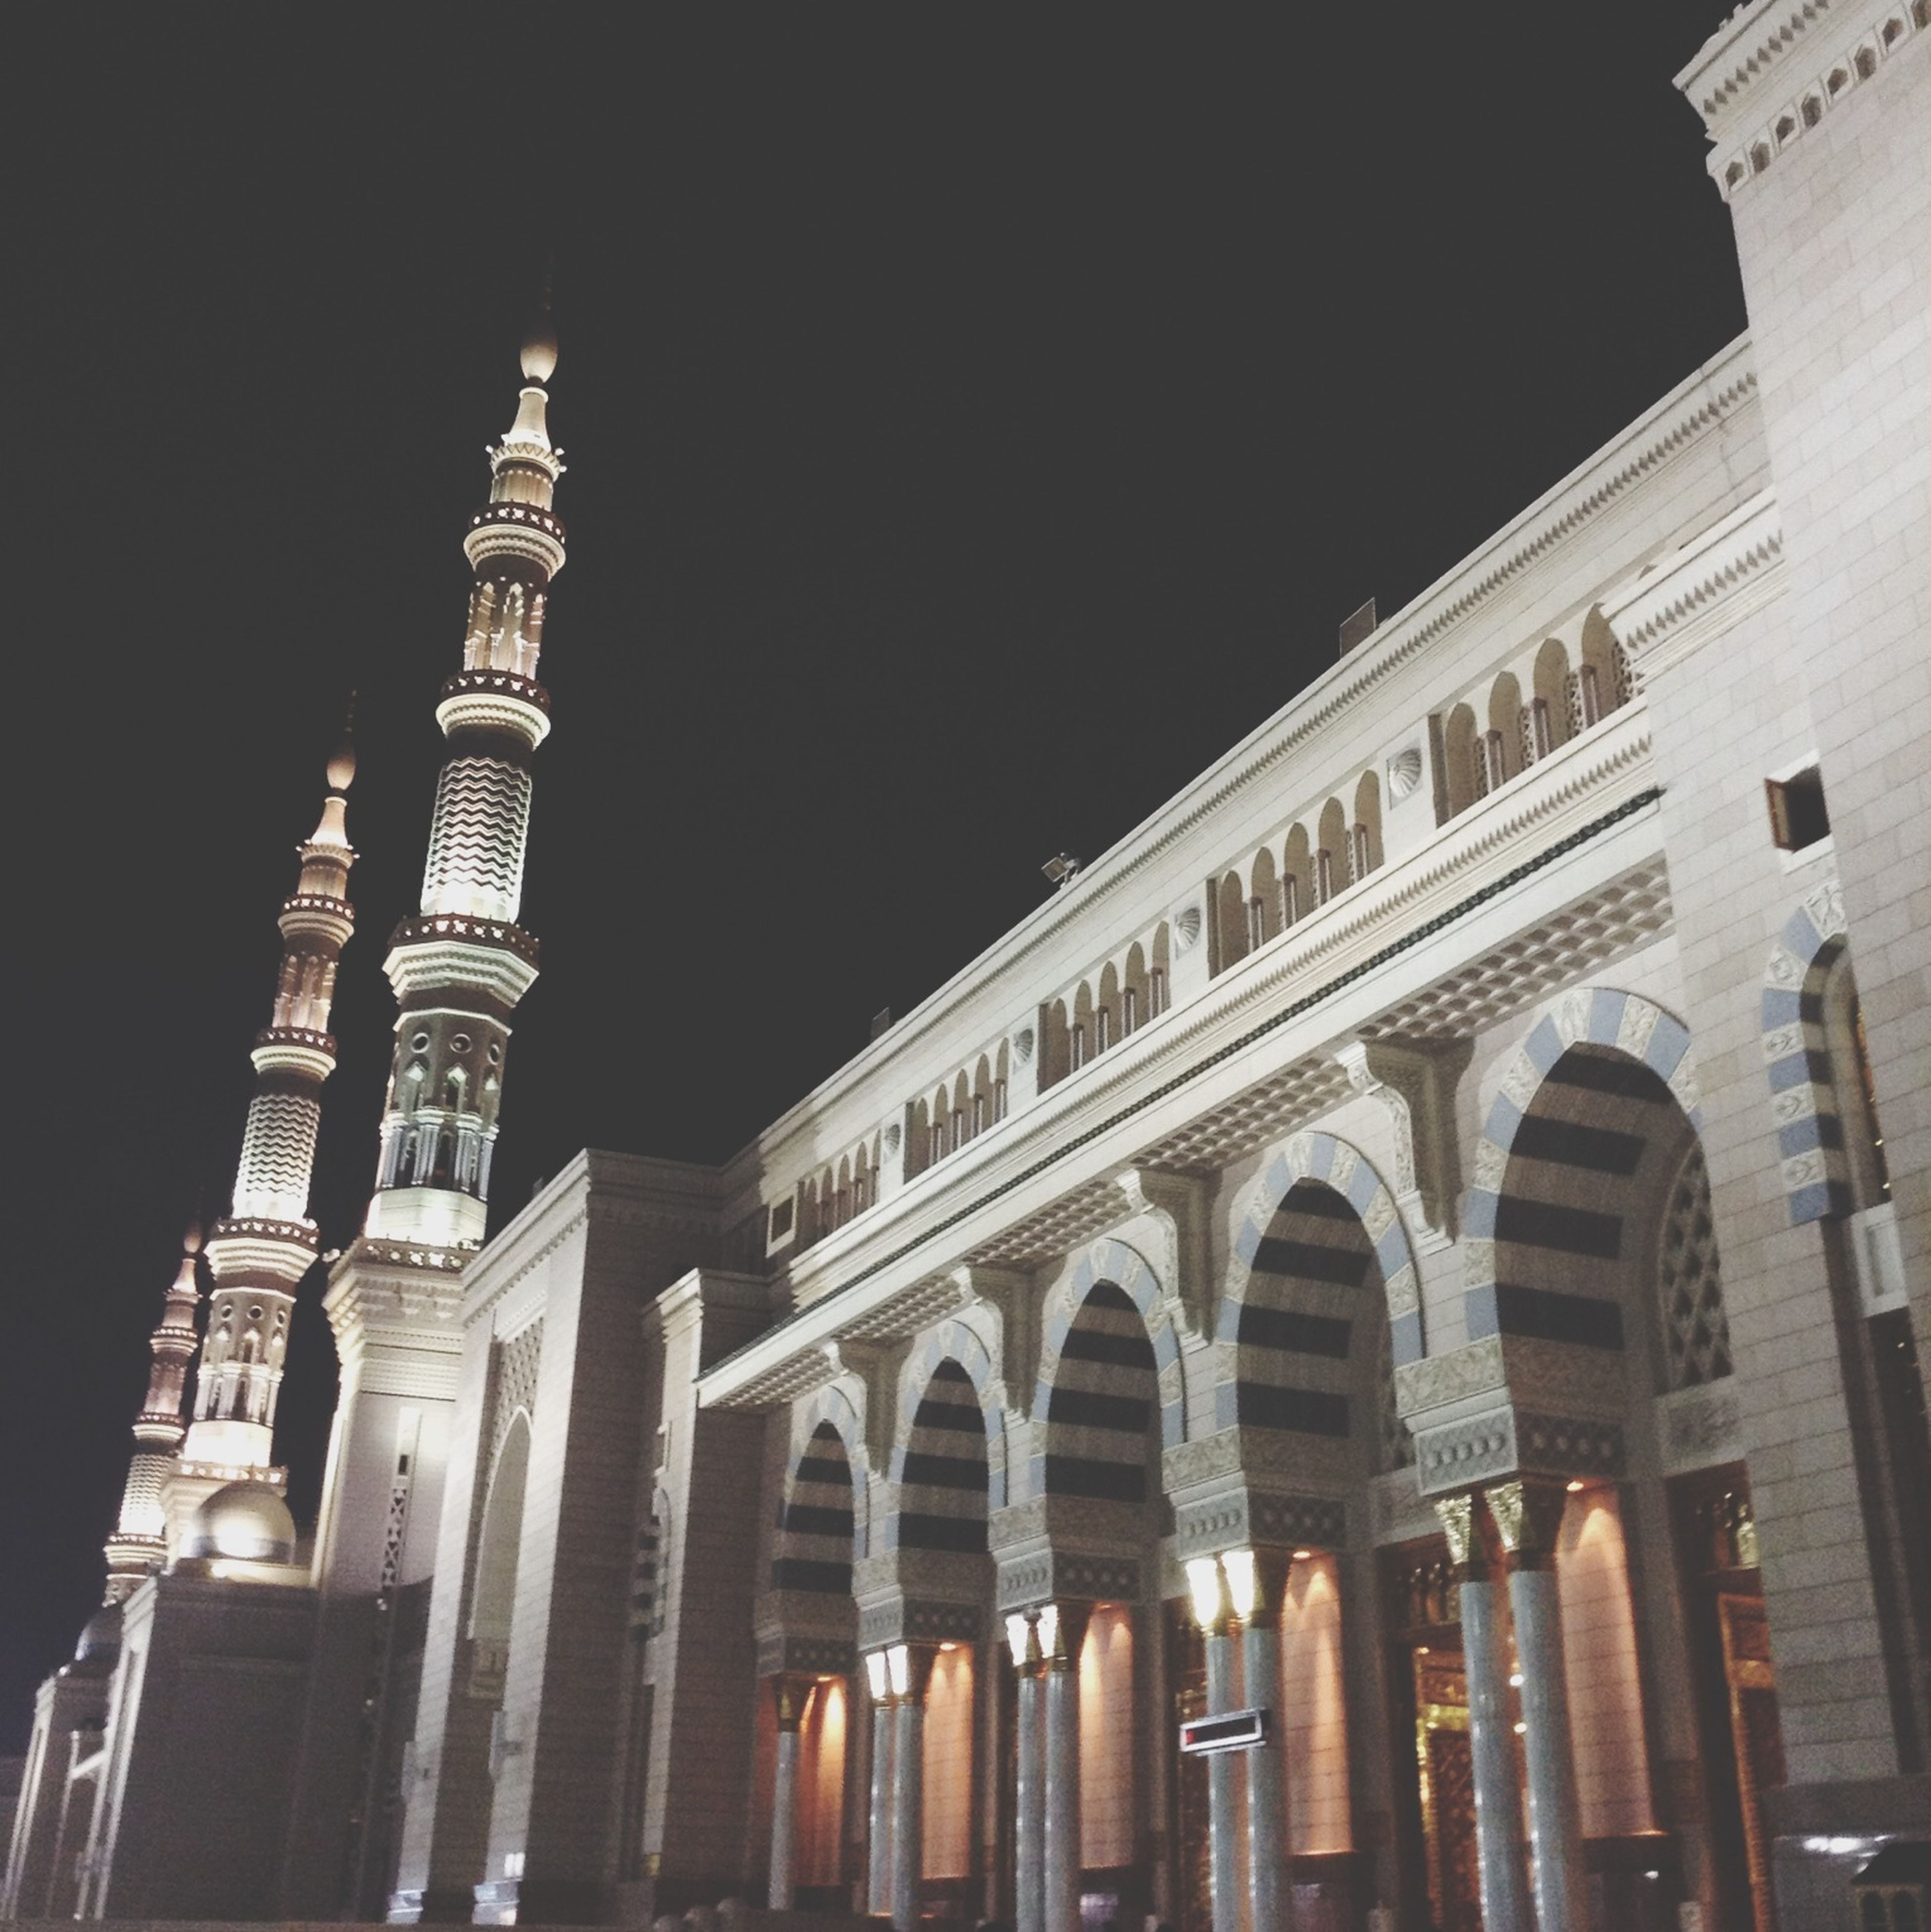 architecture, built structure, building exterior, low angle view, clear sky, history, arch, famous place, travel destinations, night, copy space, tourism, international landmark, travel, capital cities, architectural column, city, facade, outdoors, illuminated